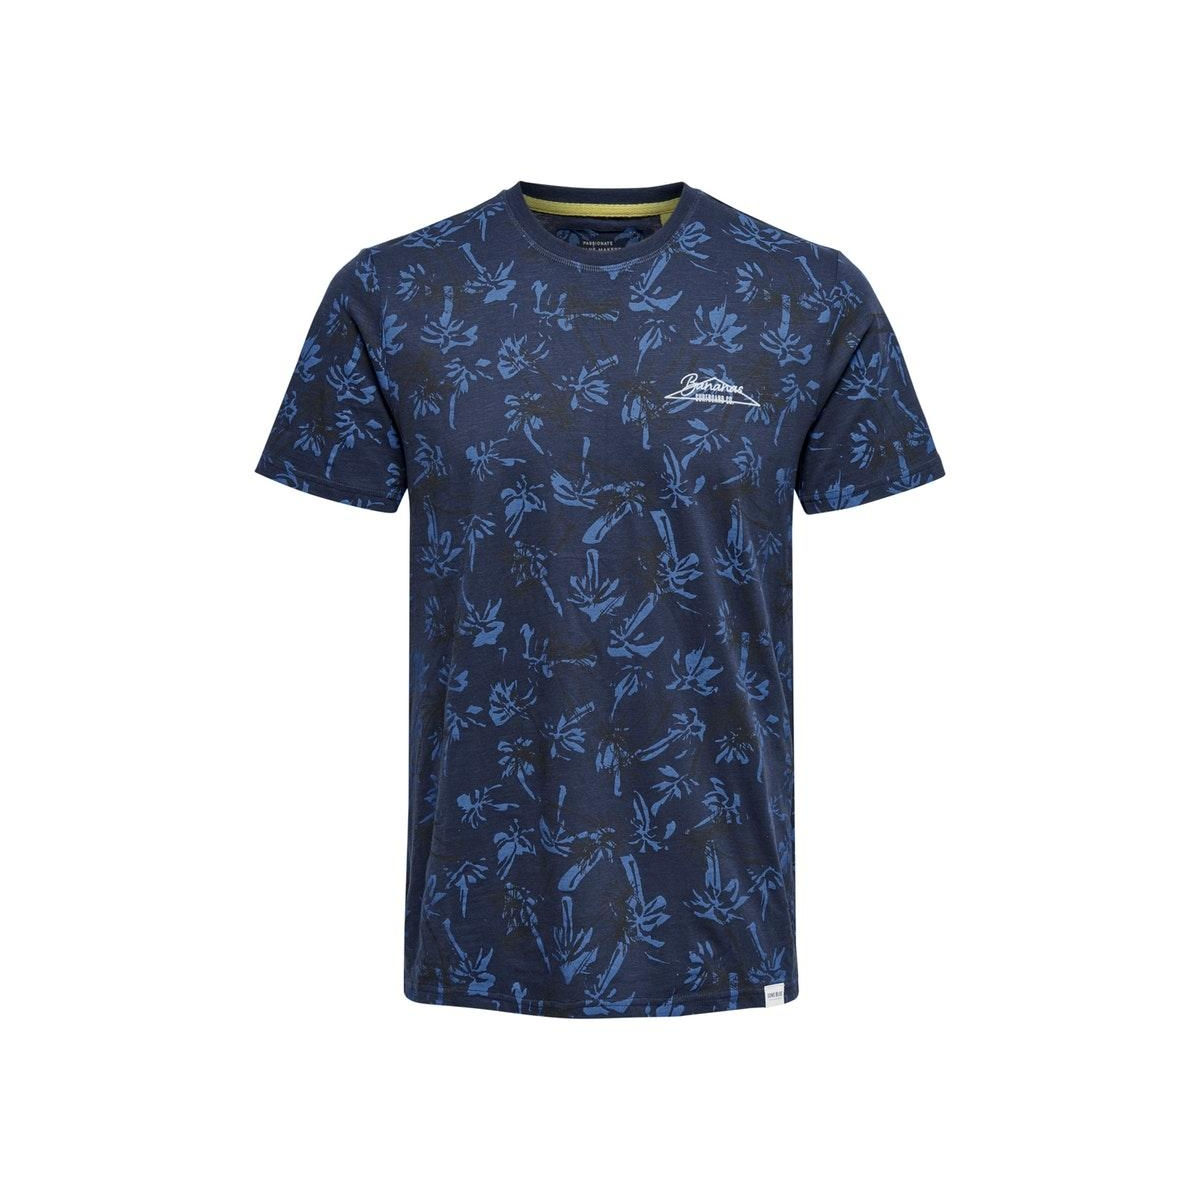 onseddy  life slim tee nf 6621 22016621 only & sons t-shirt dress blues